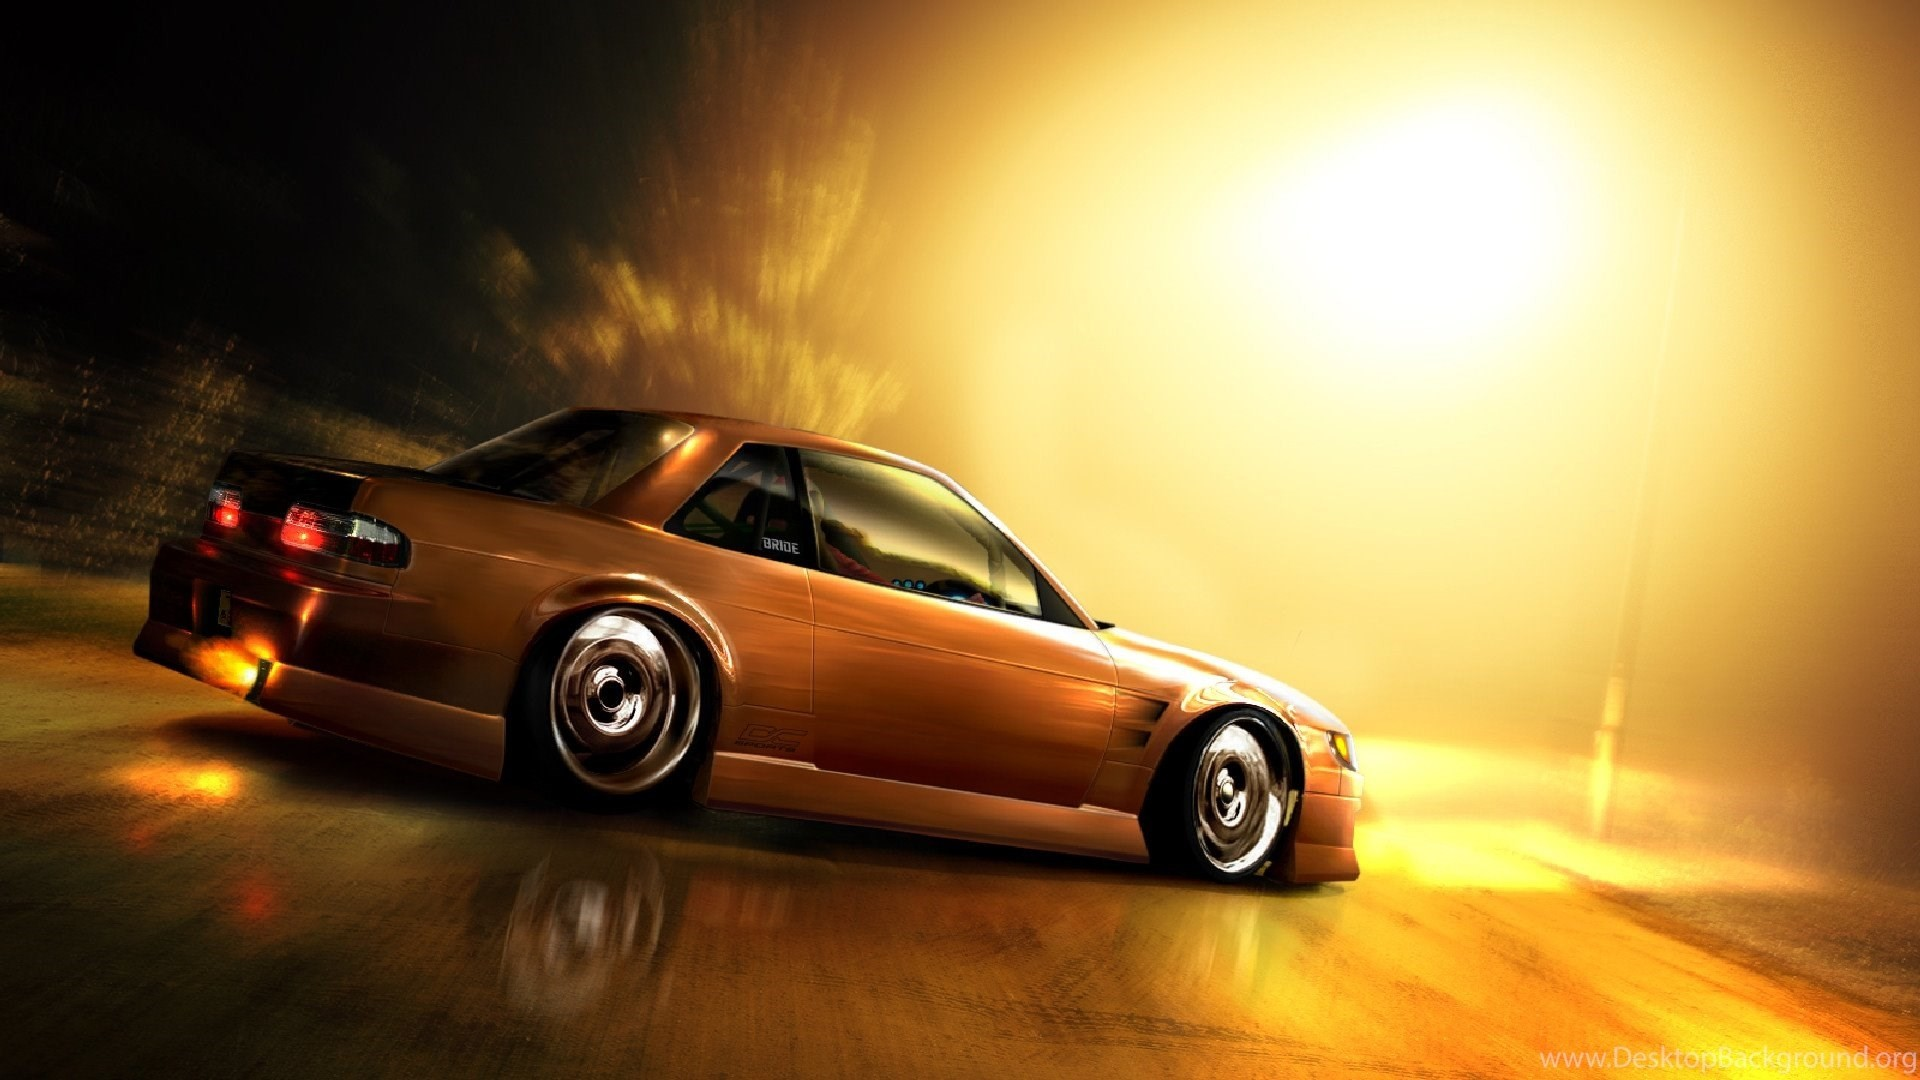 Tokyo Drift Cars Wallpapers 68 Background Pictures